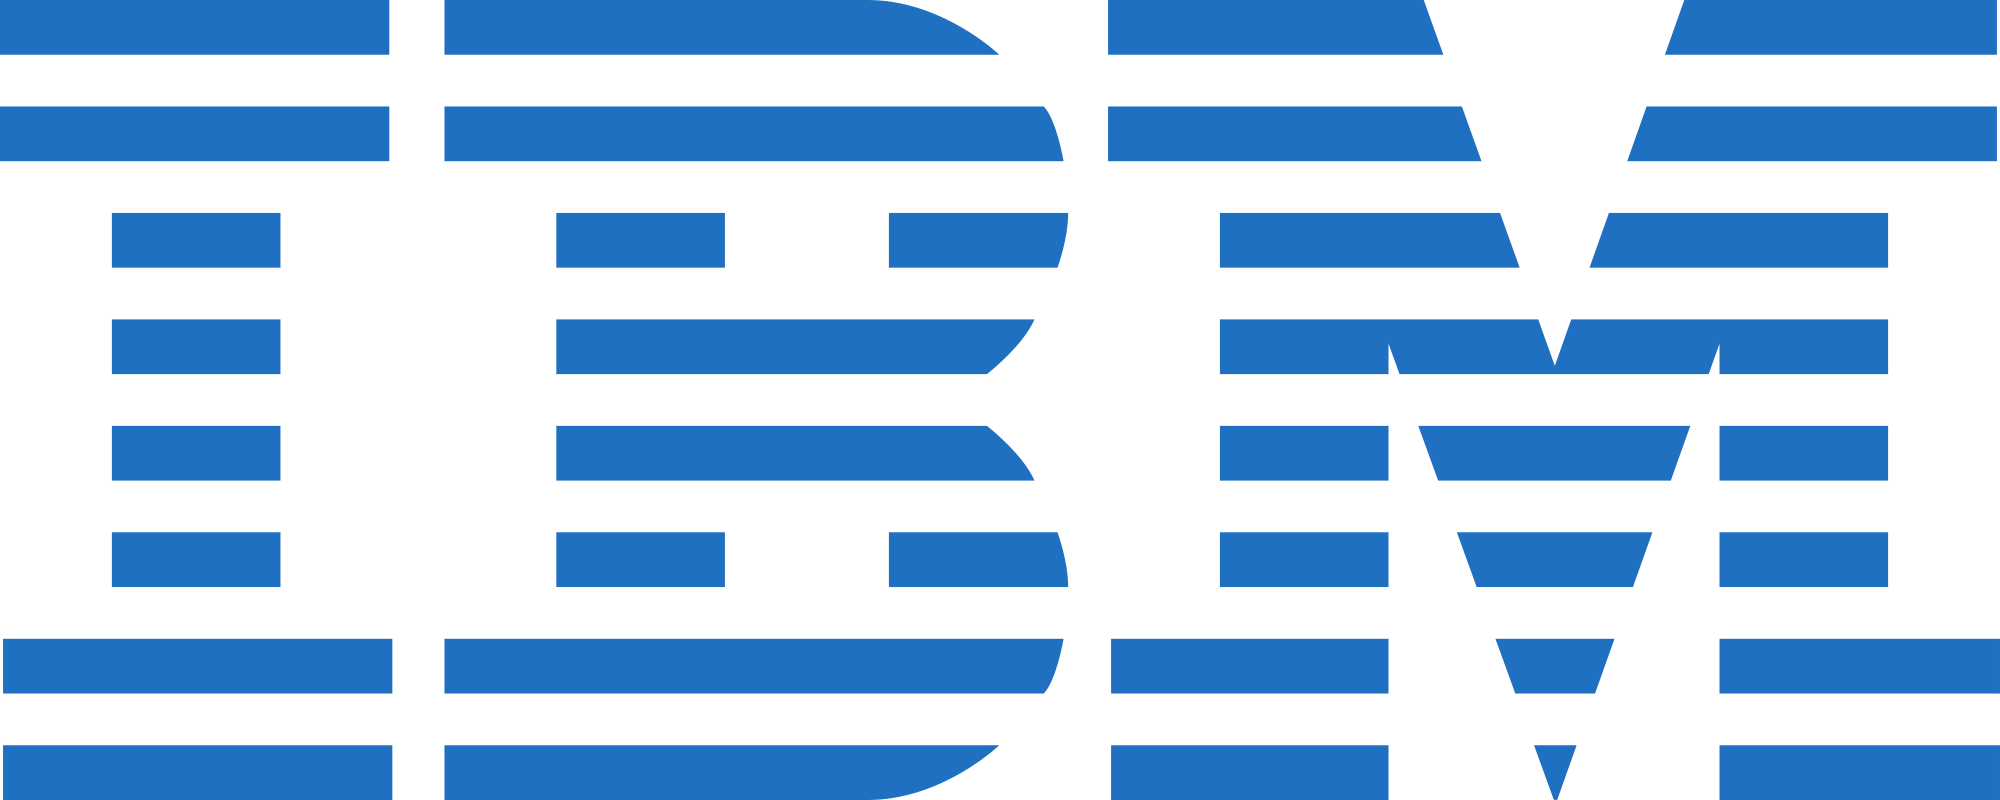 IBM Logo - File:IBM logo.svg - Wikimedia Commons